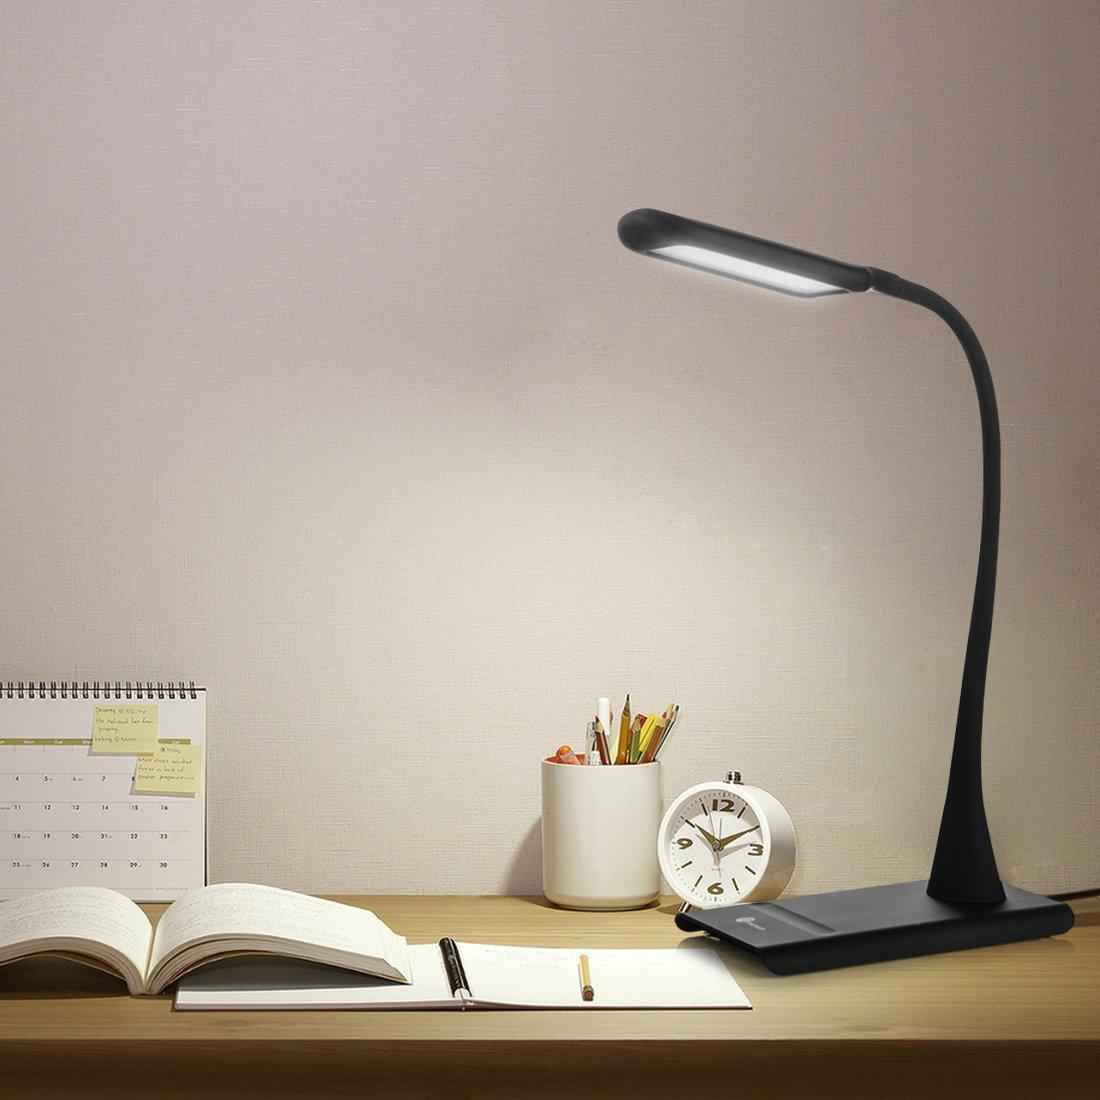 Lowest price! TaoTronics® Elune Dimmable Eye-Care LED Desk Lamp